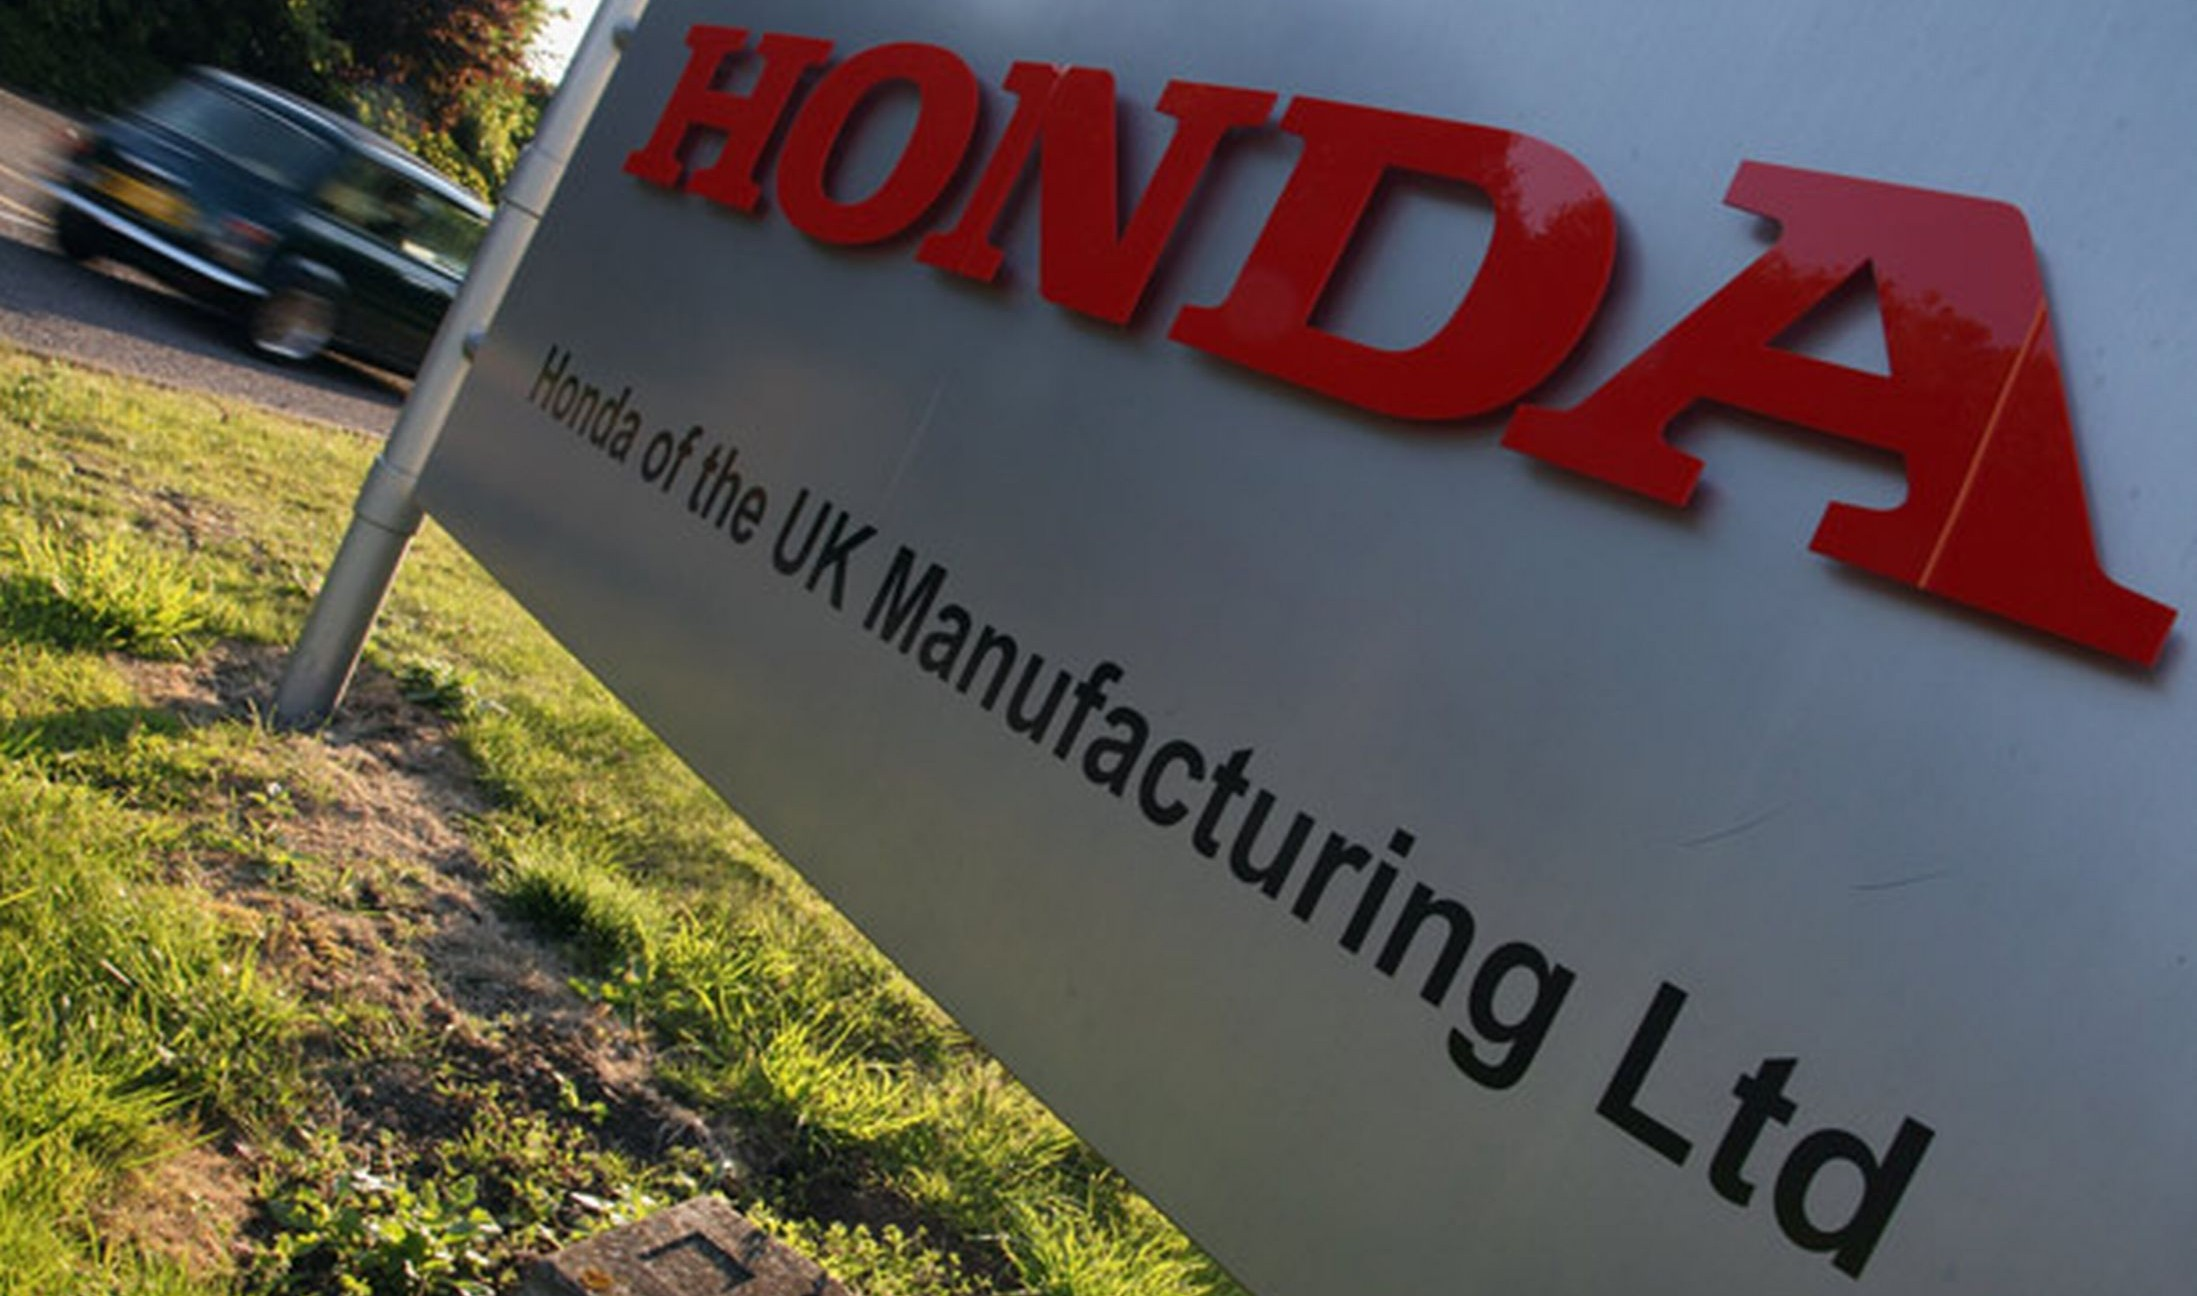 The-Honda-factory-in-Swindon